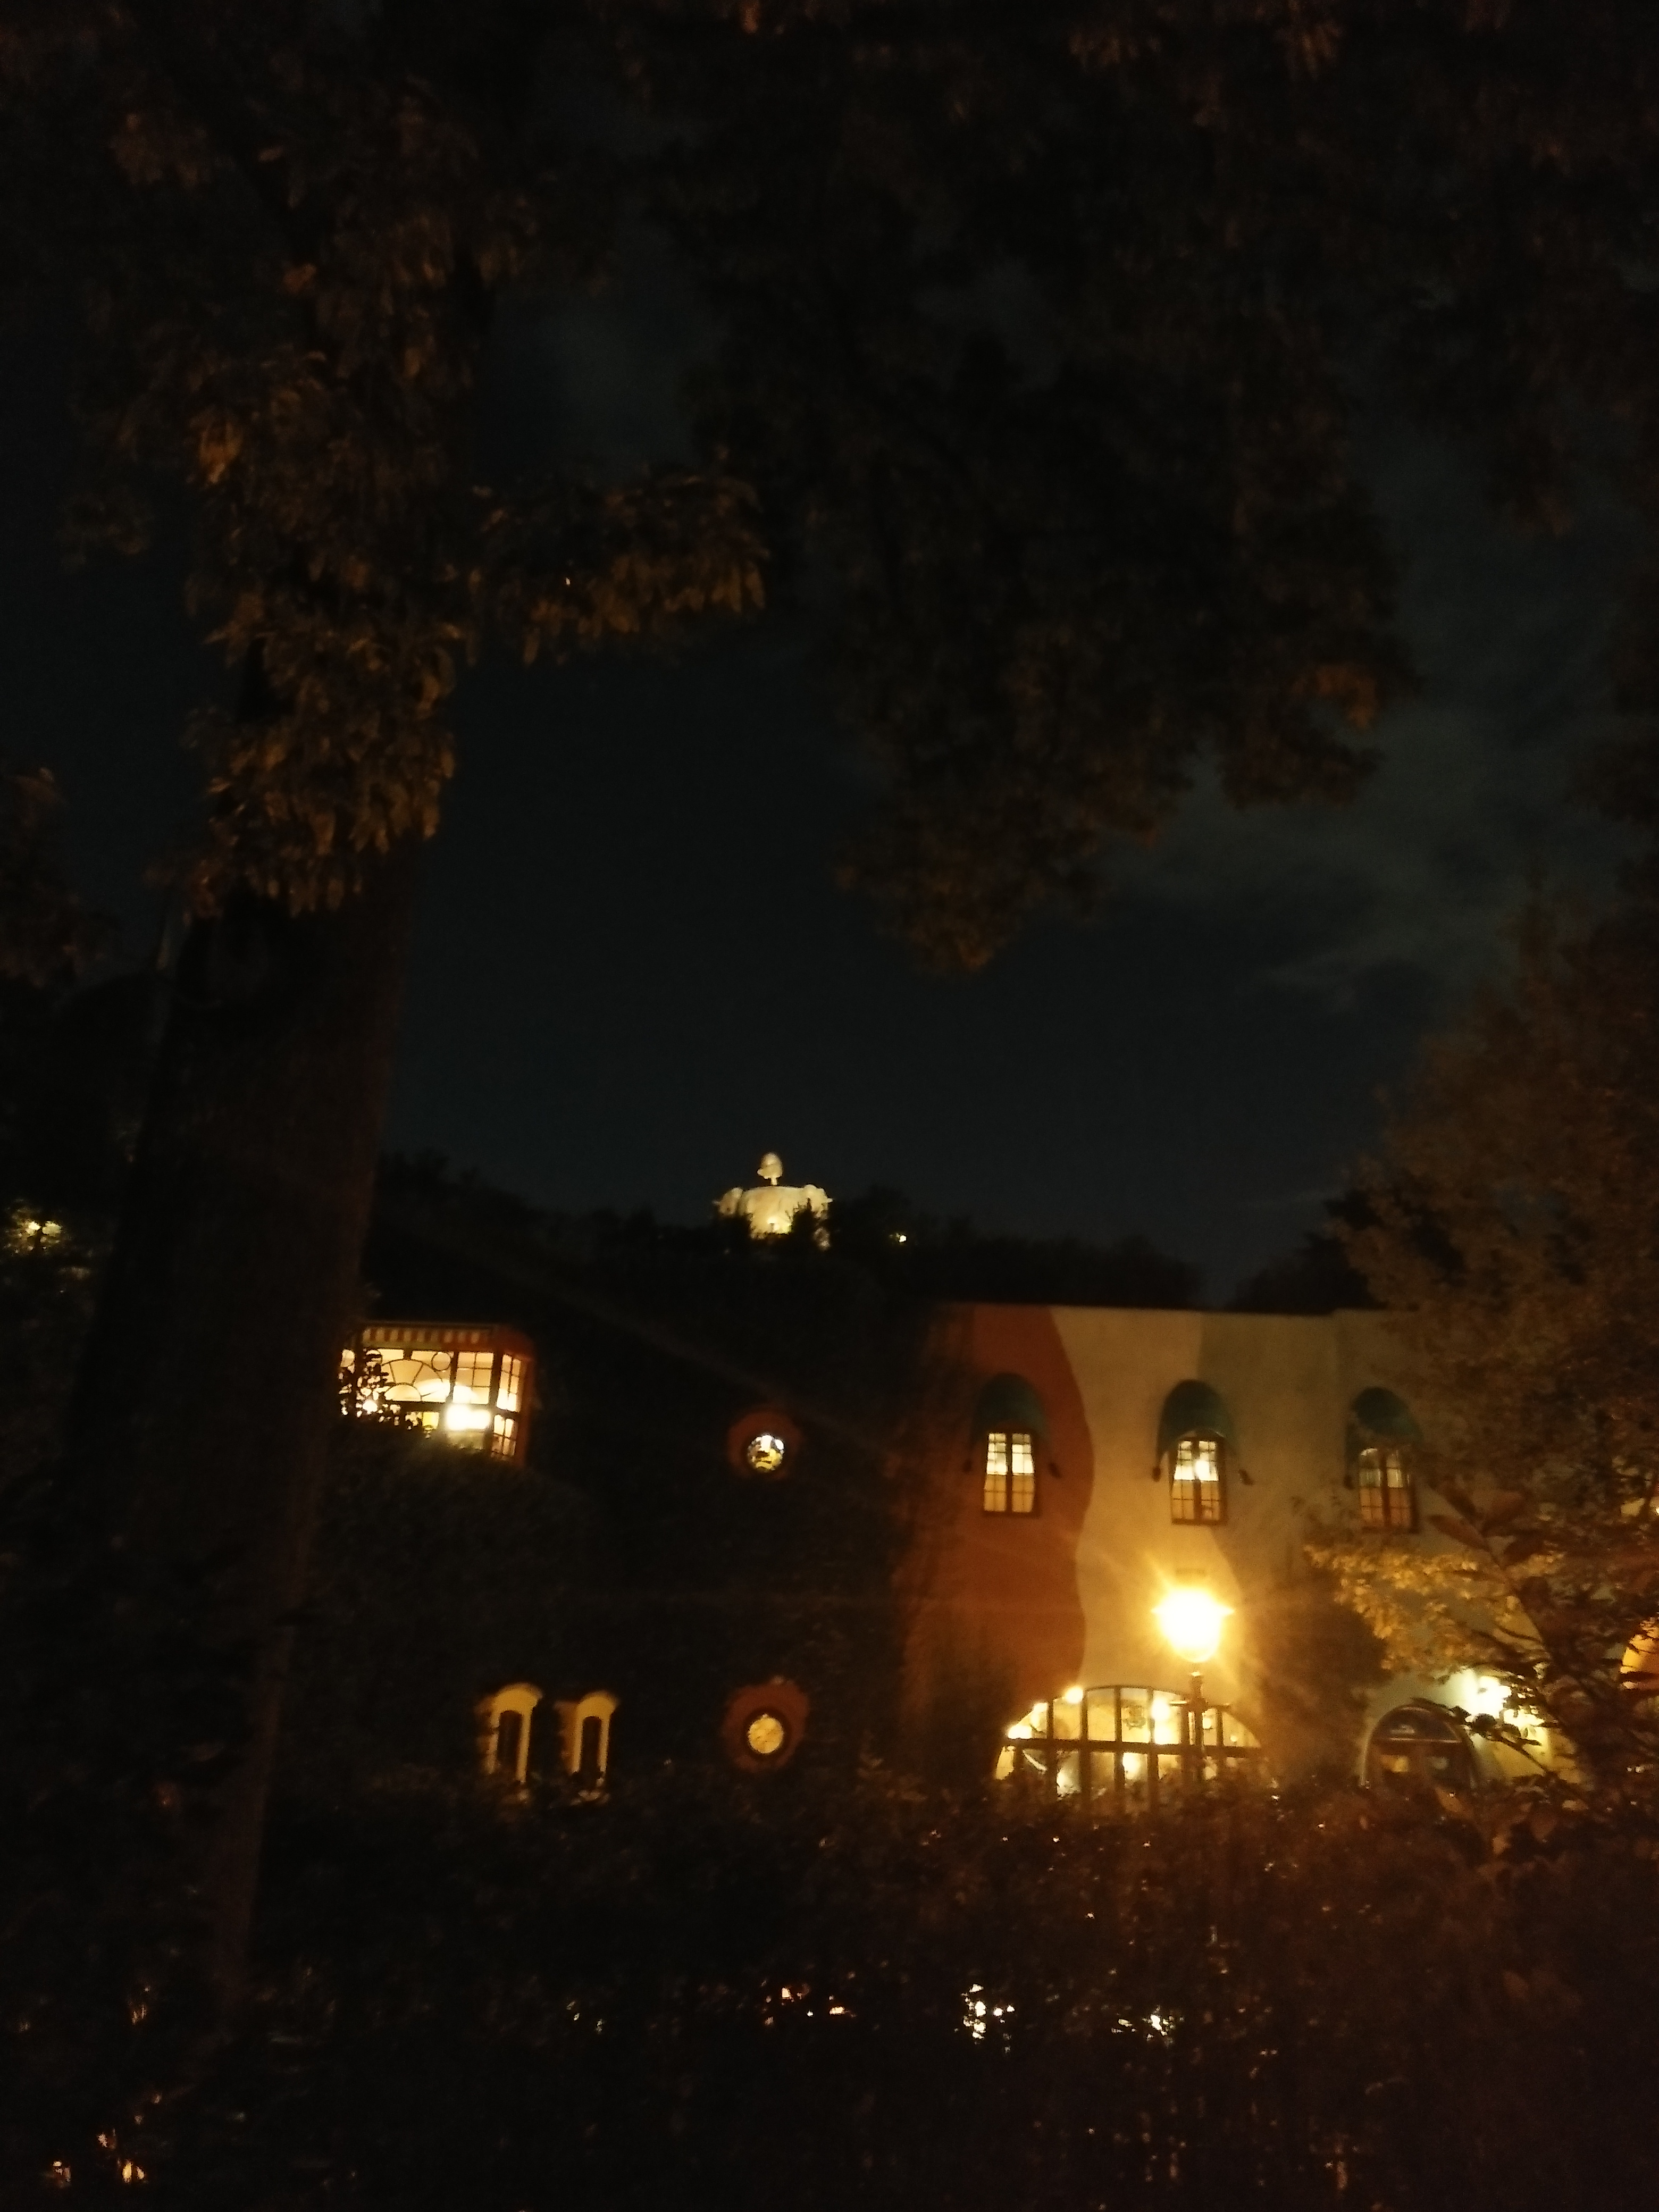 Picture of the robot soldier peeking from the roofs of the museum after dark